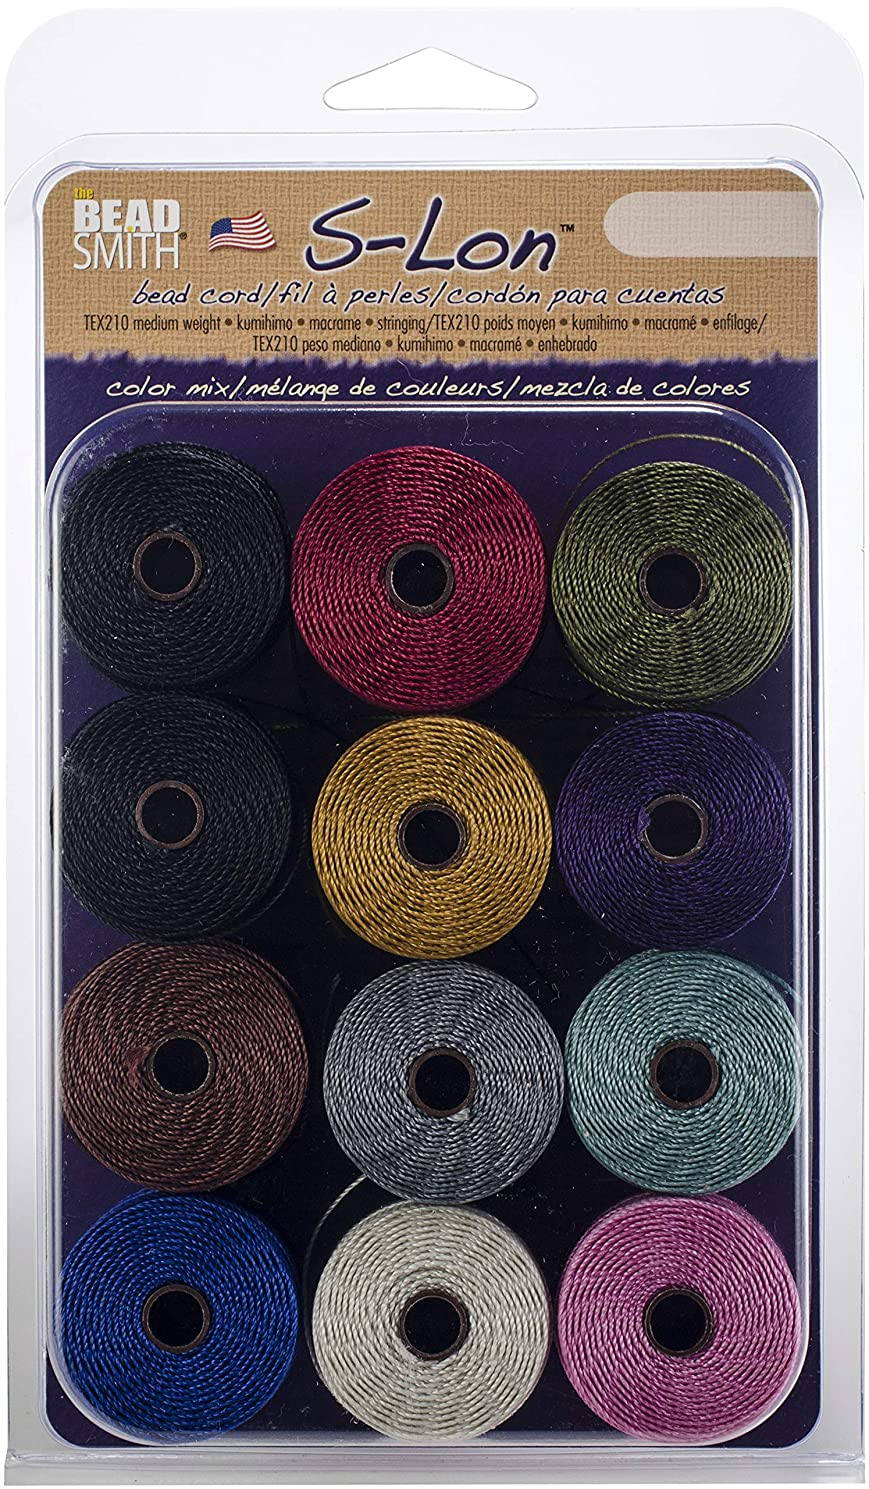 Beadsmith S-Lon Bead Cord for Jewelry, Macrame and Kumihimo, SLBC-MIXAG Adrienne Gaskell Mix